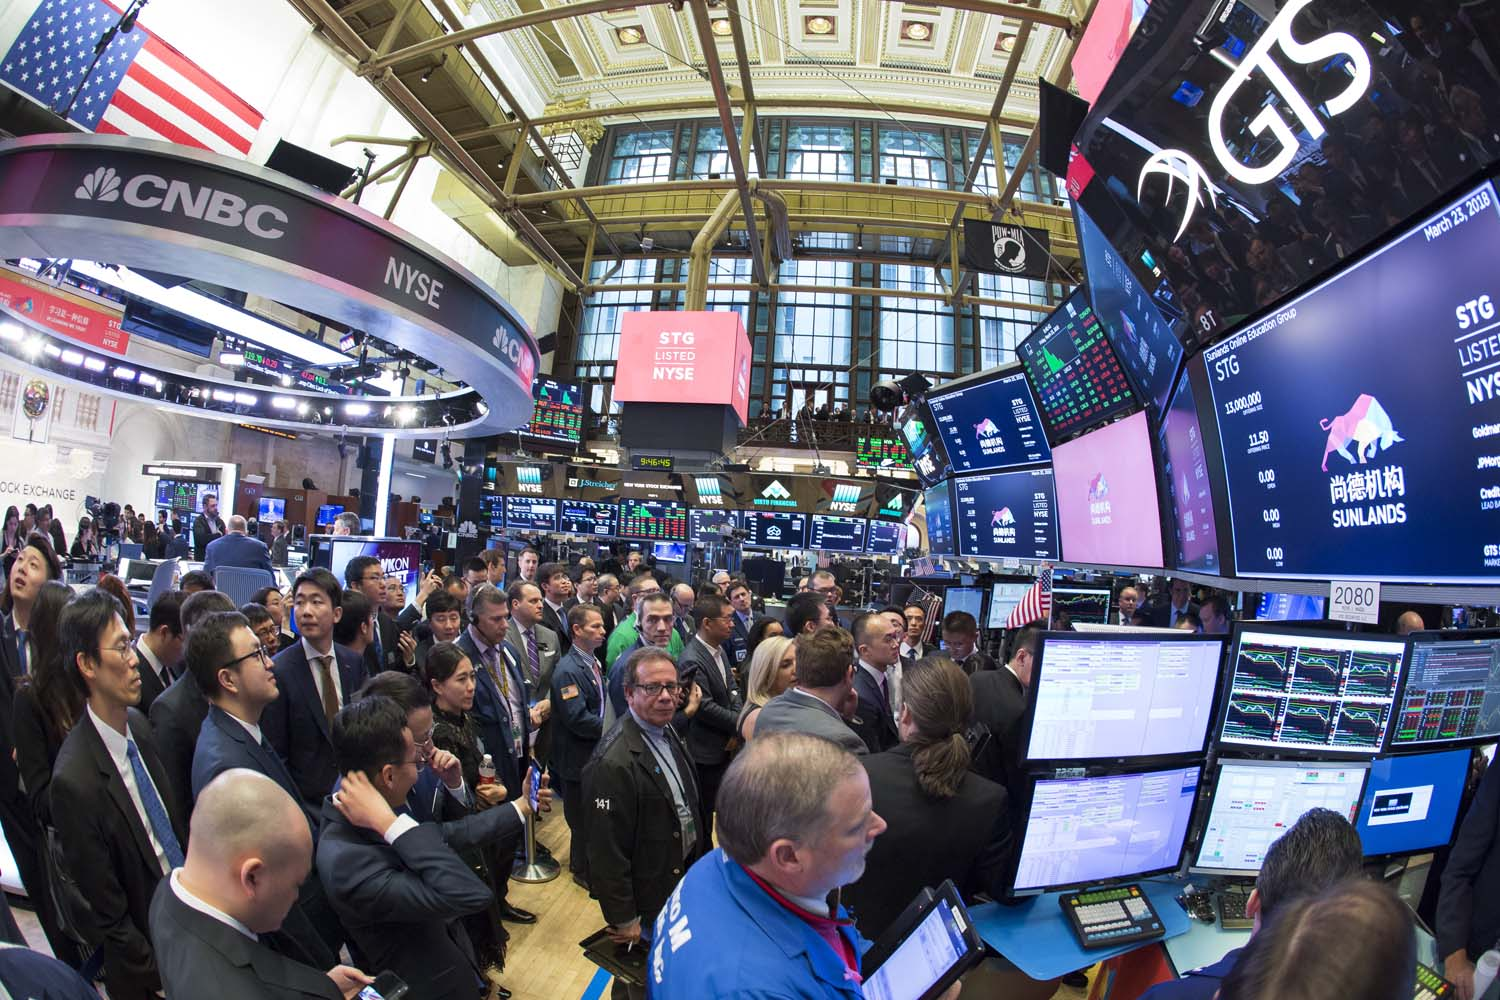 Fisheye view of the trading floor